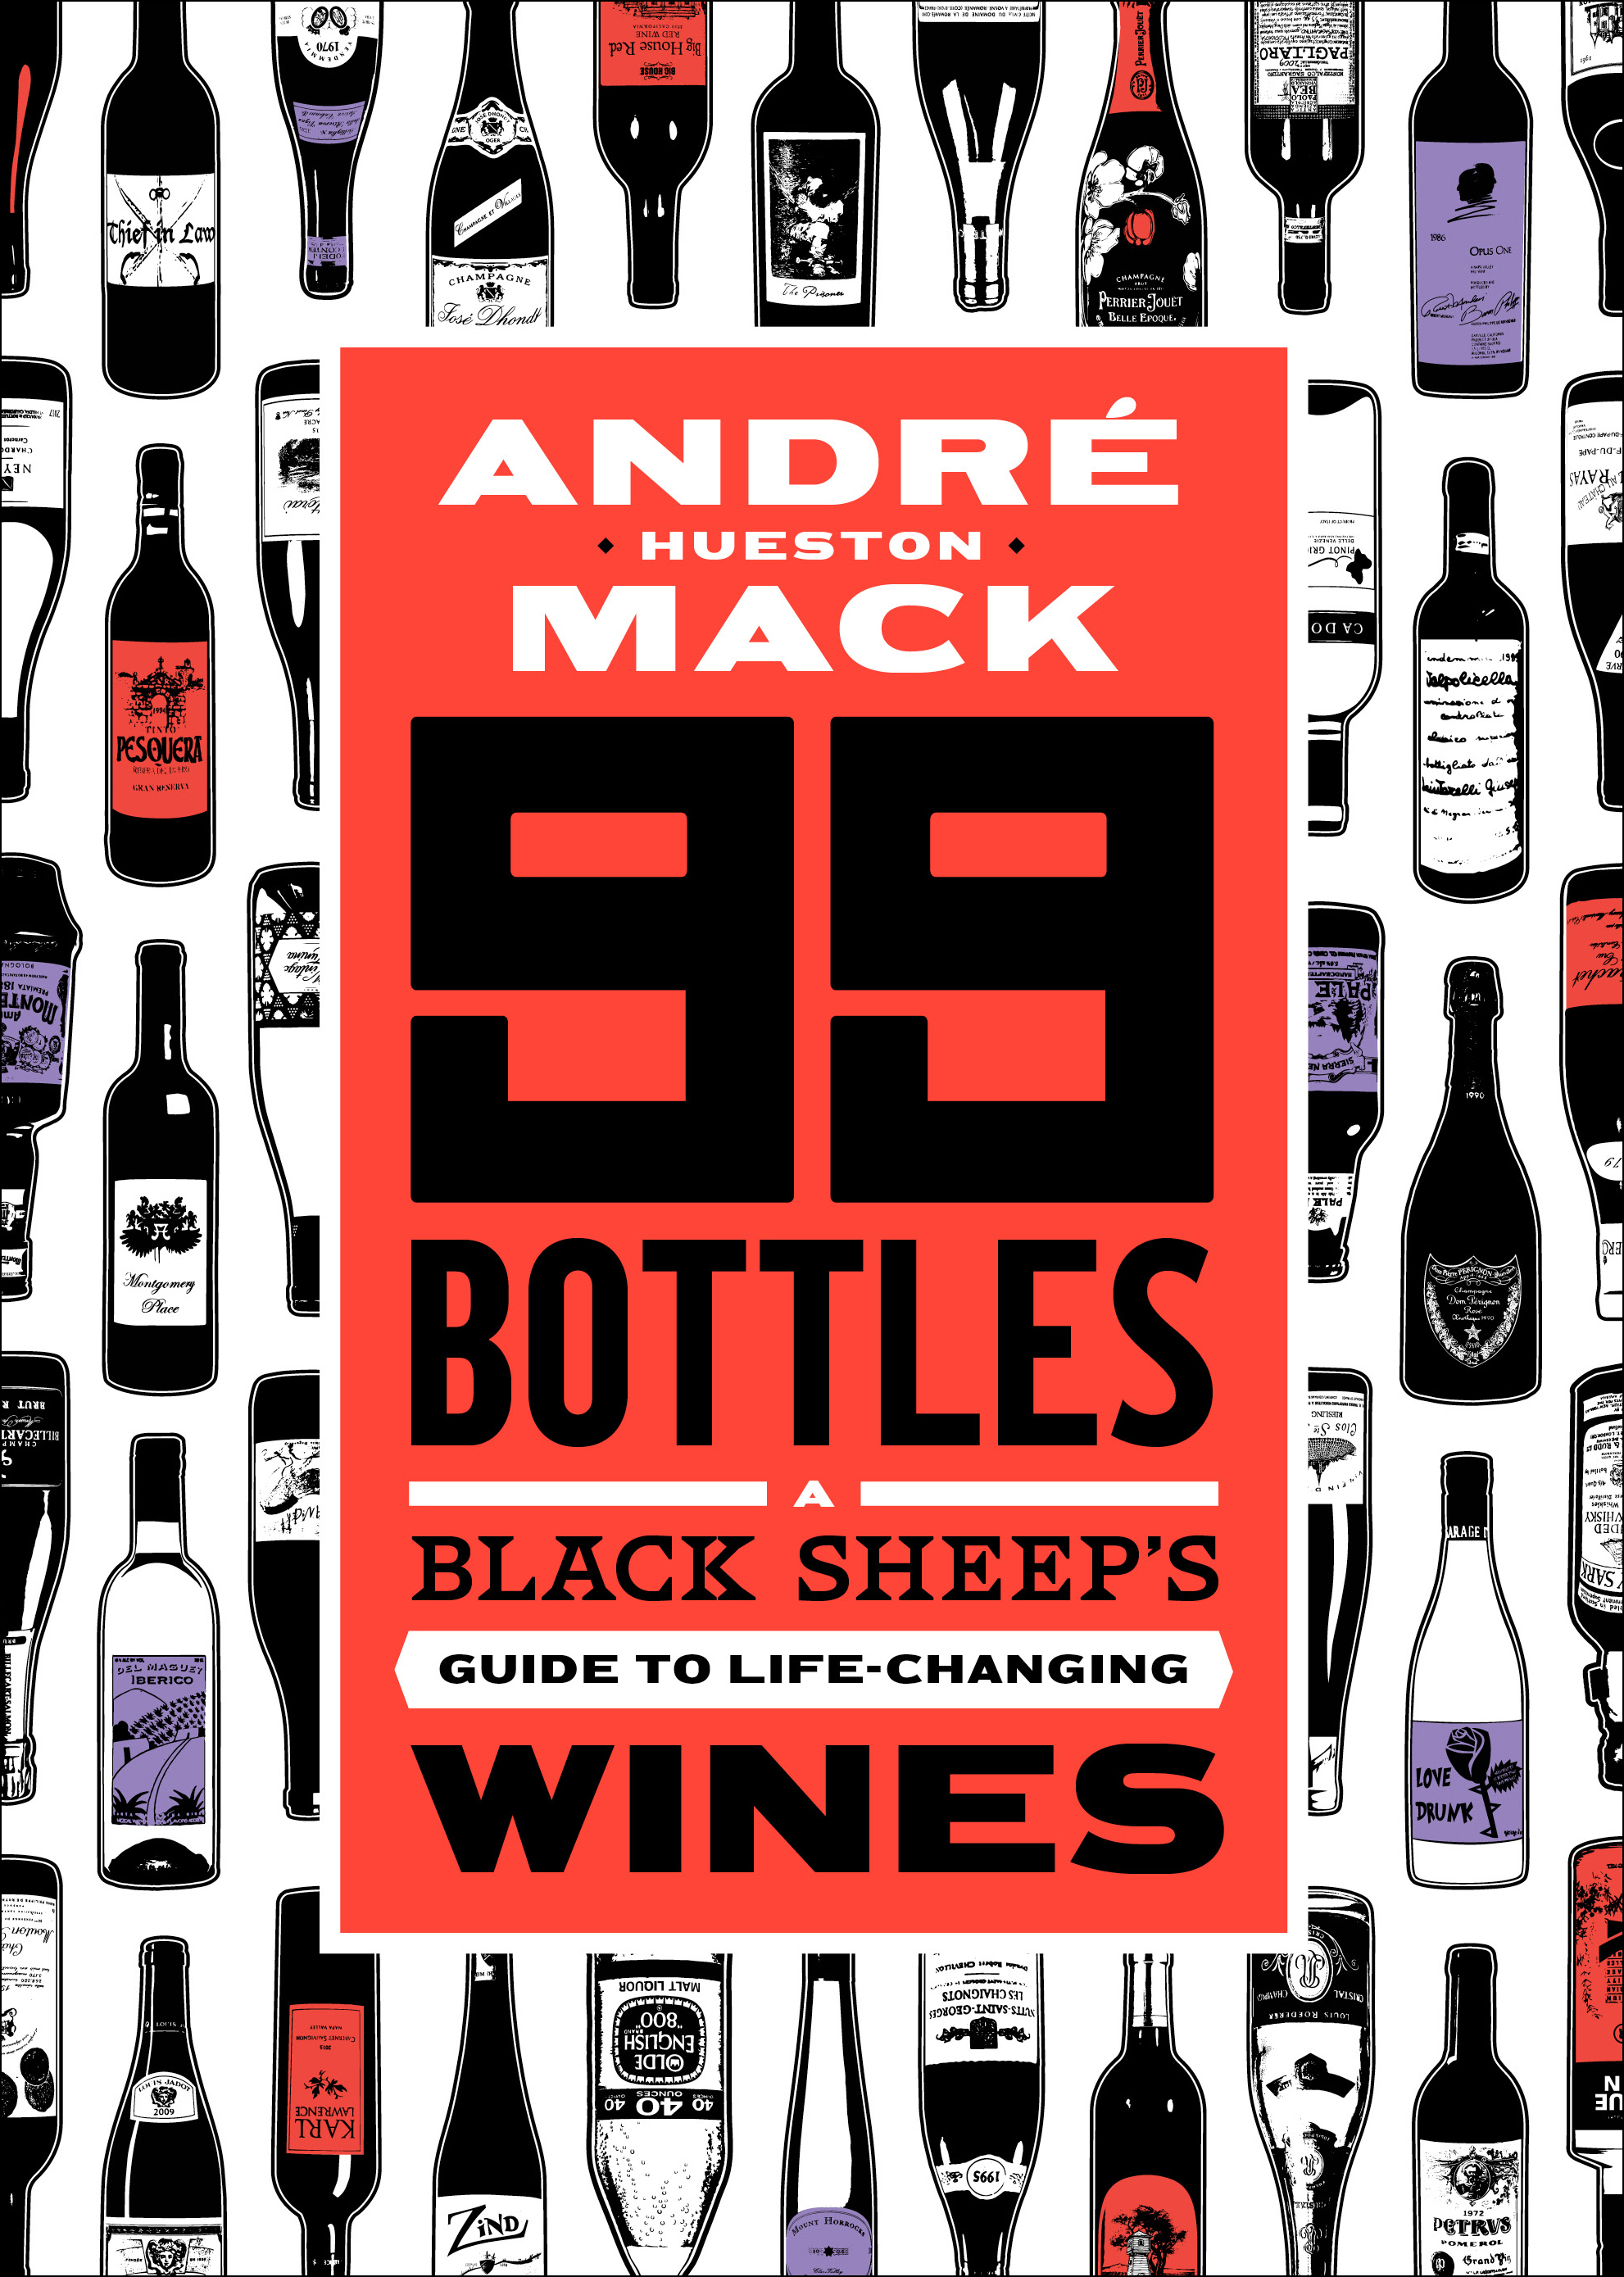 A highly opinionated, vibrantly illustrated wine guide - from one of the country's most celebrated—and unorthodox—sommeliers and winemakers. The 99 bottles range from highly accessible commercial wines to the most rarefied Bordeaux on the wine list at The French Laundry, and each bottle offers readers something to learn about wine. This window into Mack's life combines a maverick's perspective on the wine industry with an insider's advice on navigating wine lists, purchasing wine, and drinking more diverse and interesting selections at home. 99 Bottles is a one-of-a-kind exploration of wine culture today from a true trailblazer.